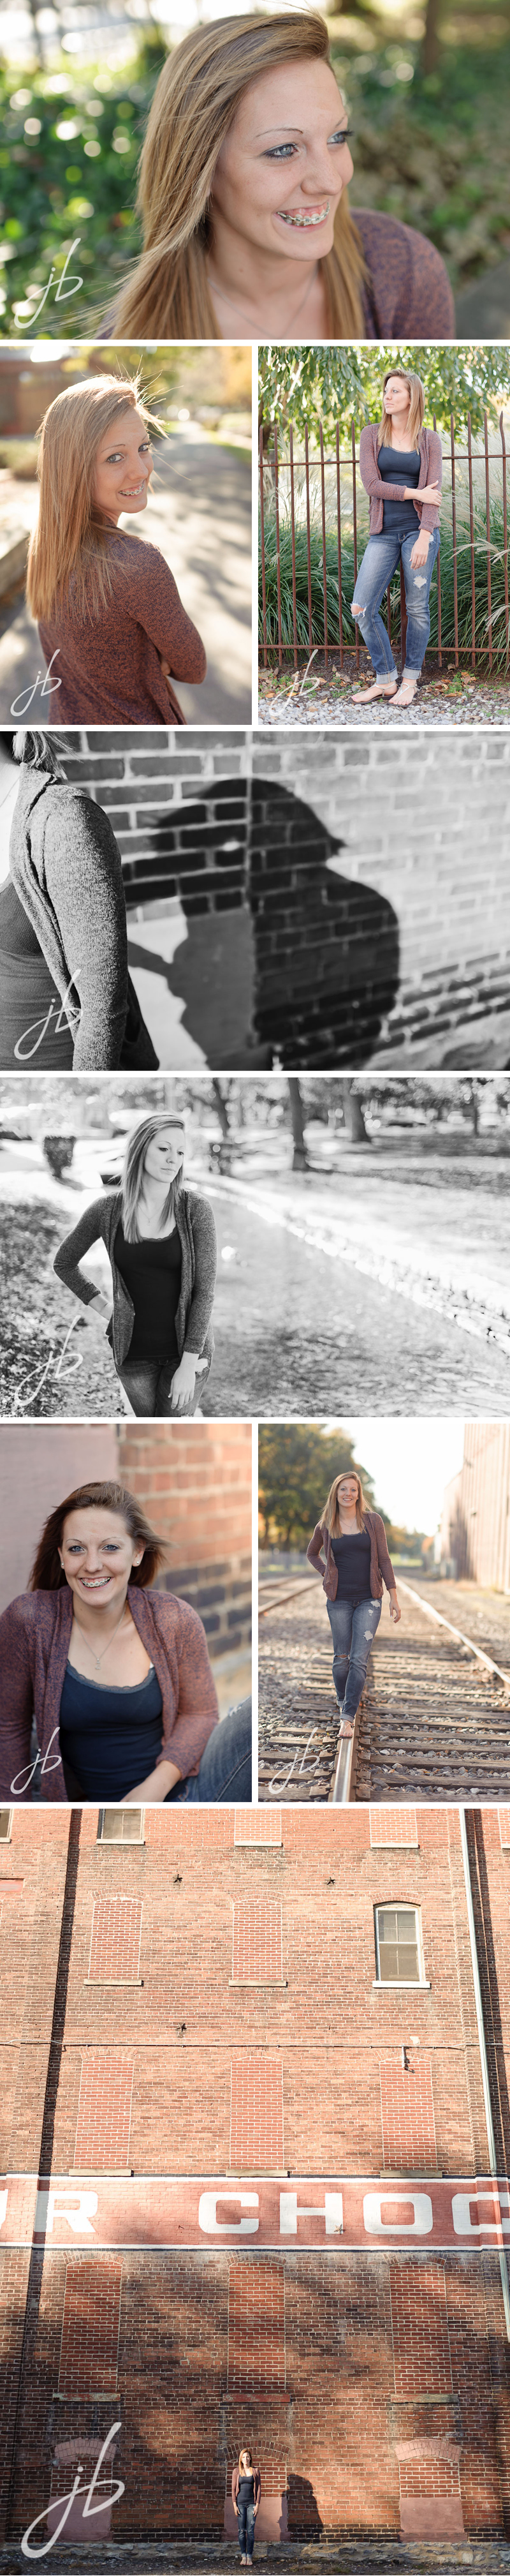 Lancaster County Senior Portrait Photography by Jeremy Bischoff Photography